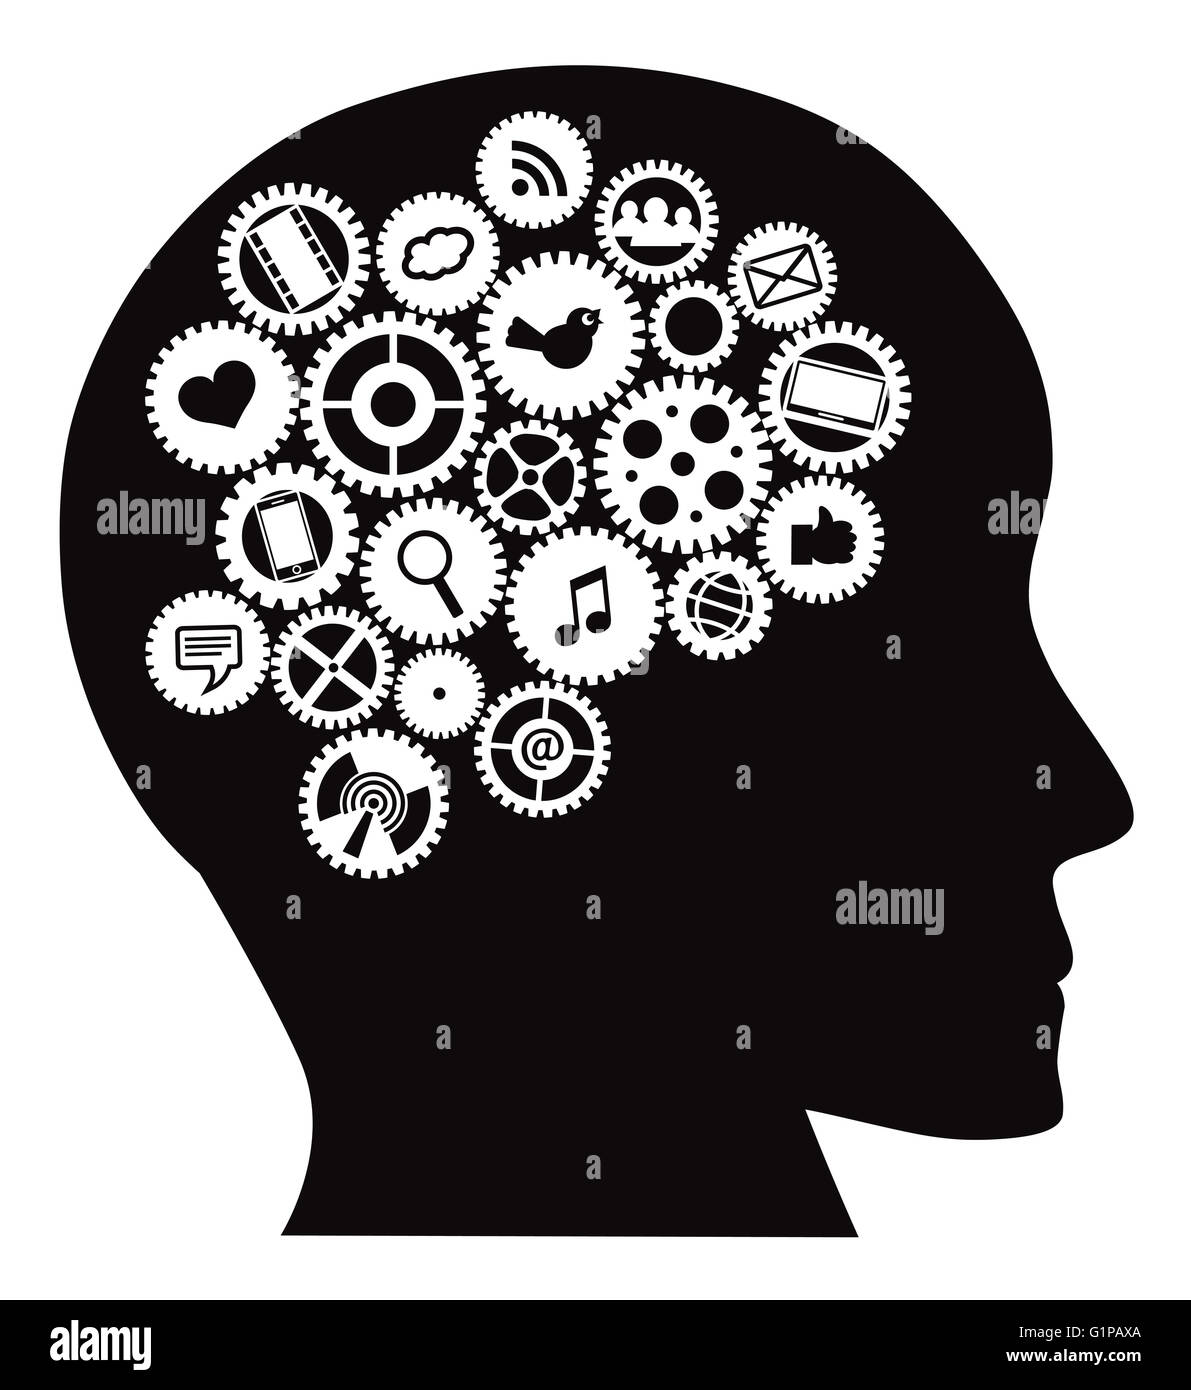 Machine Gears Inside Human Head With Social Media Symbols Black Isolated On White Background Illustration